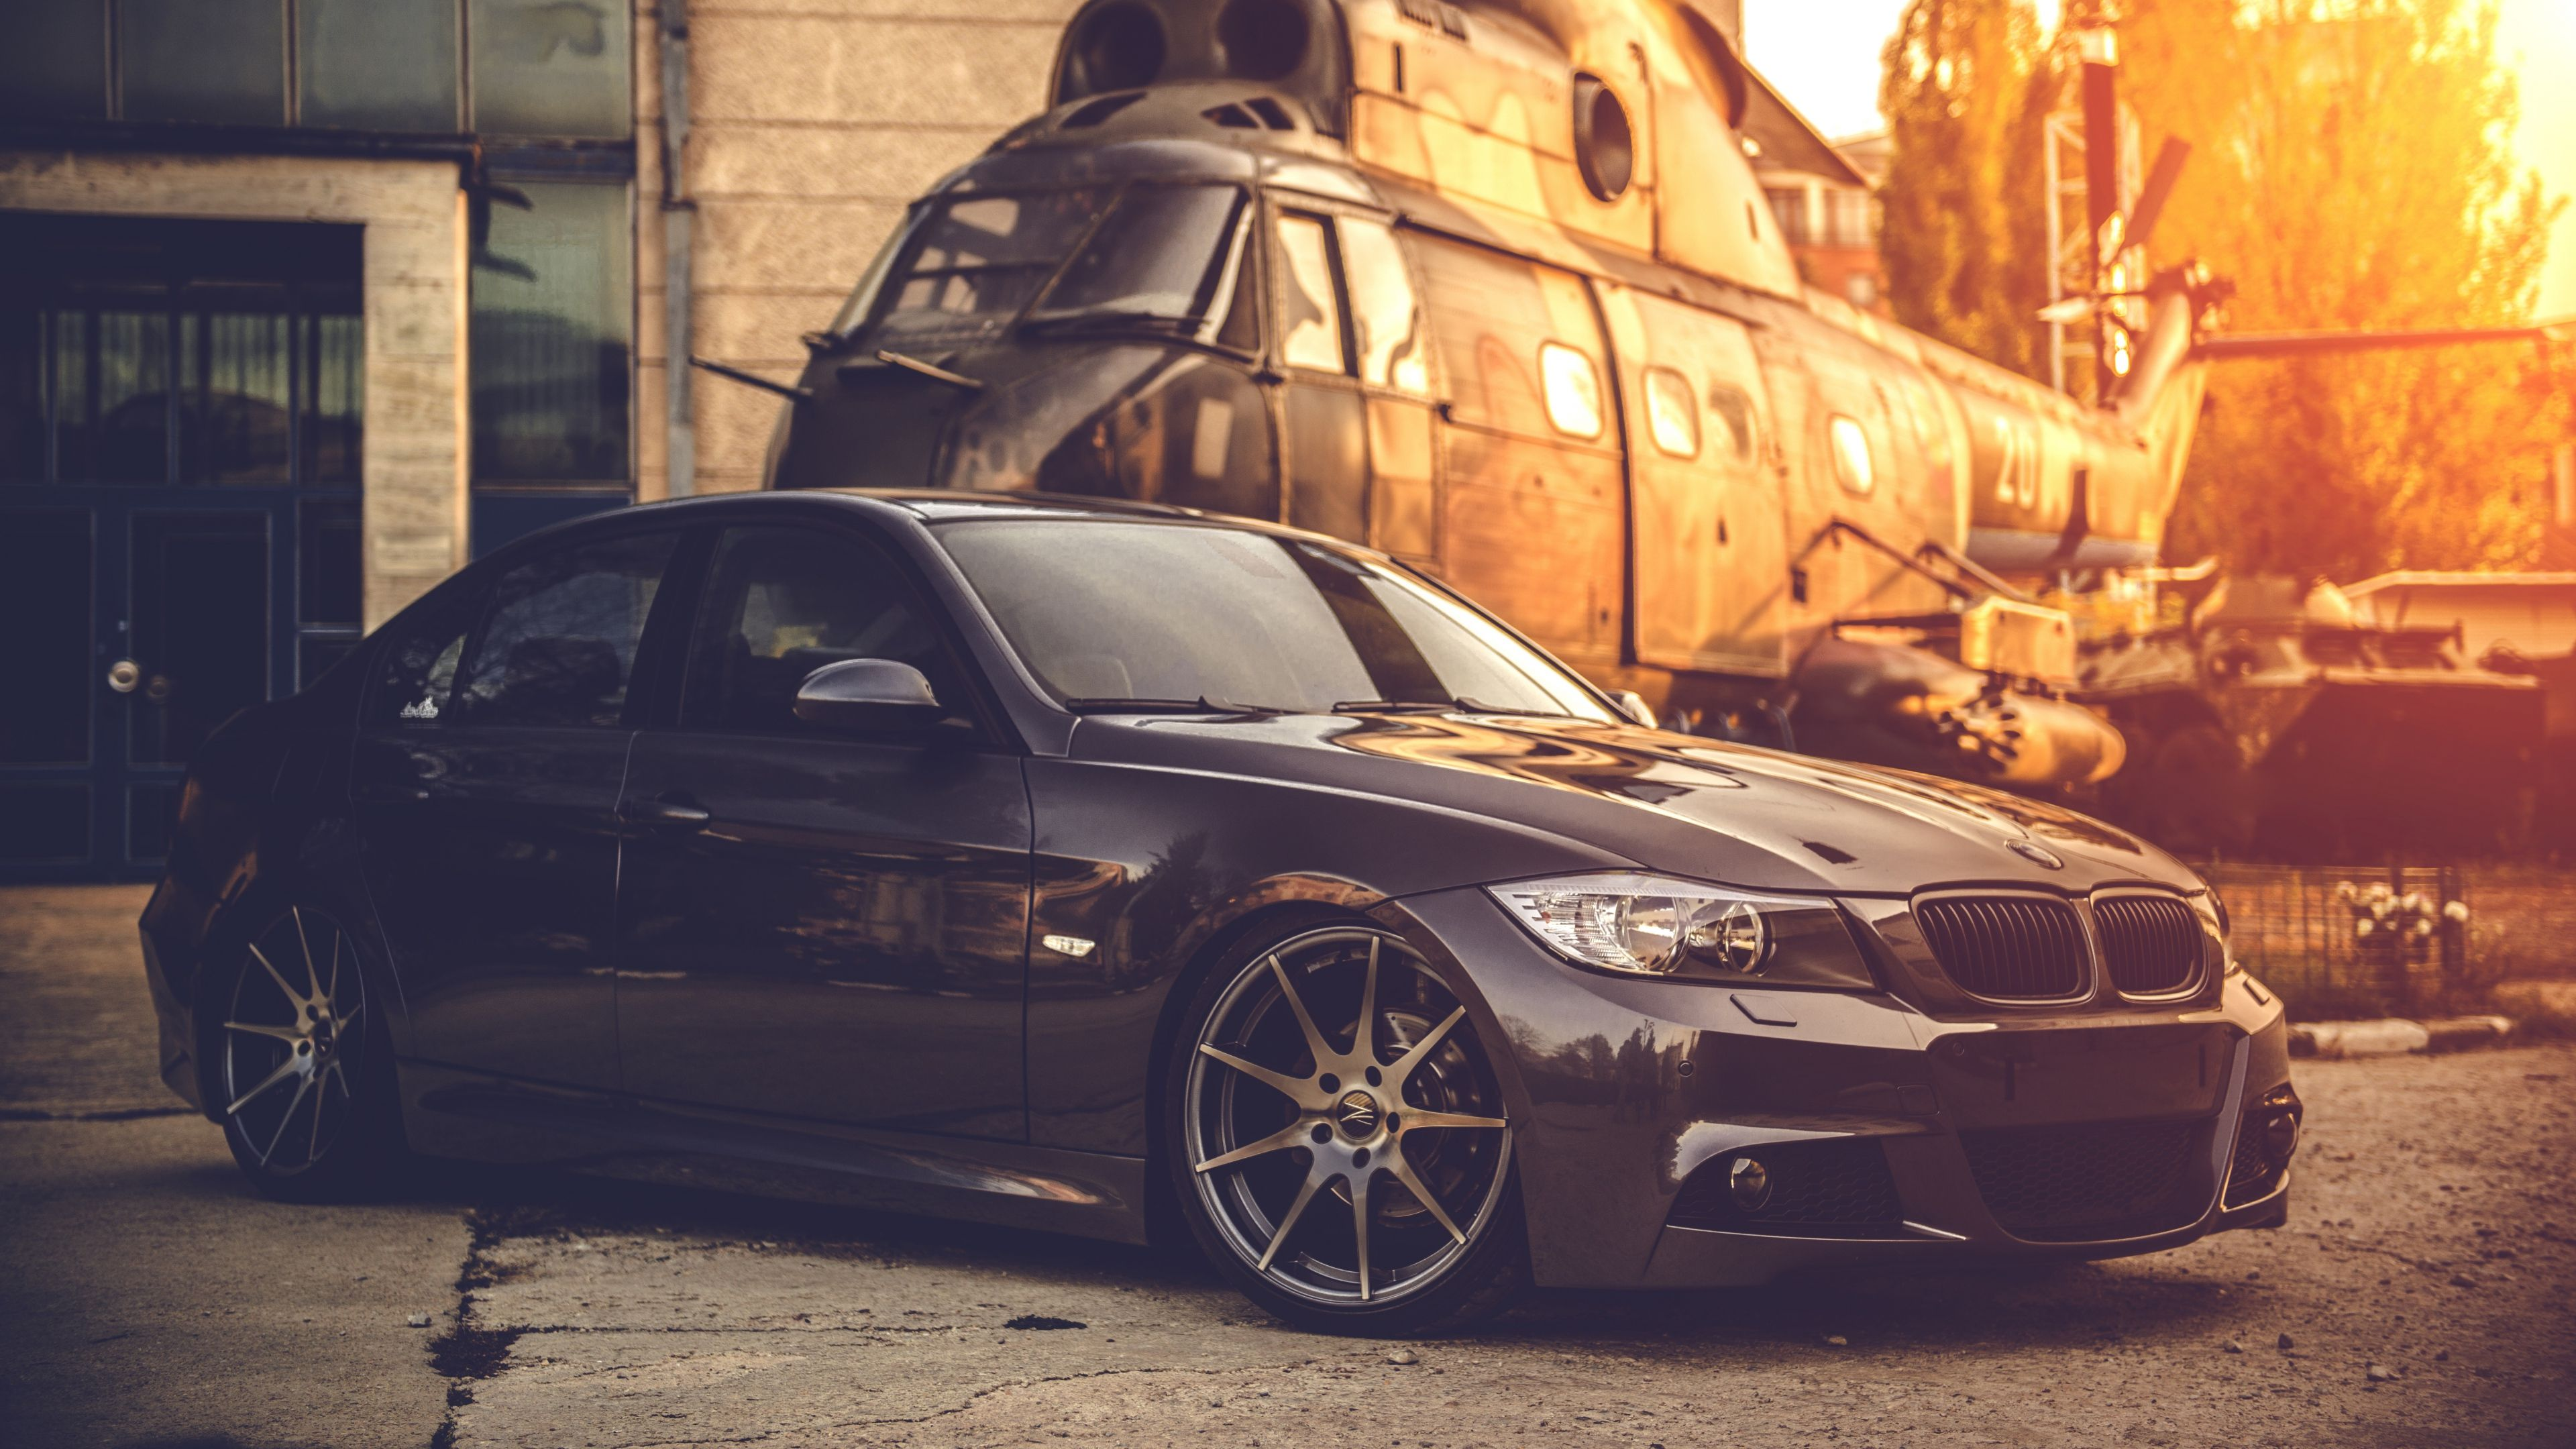 image for bmw car black 4k ultra hd wallpaper | bmw | pinterest